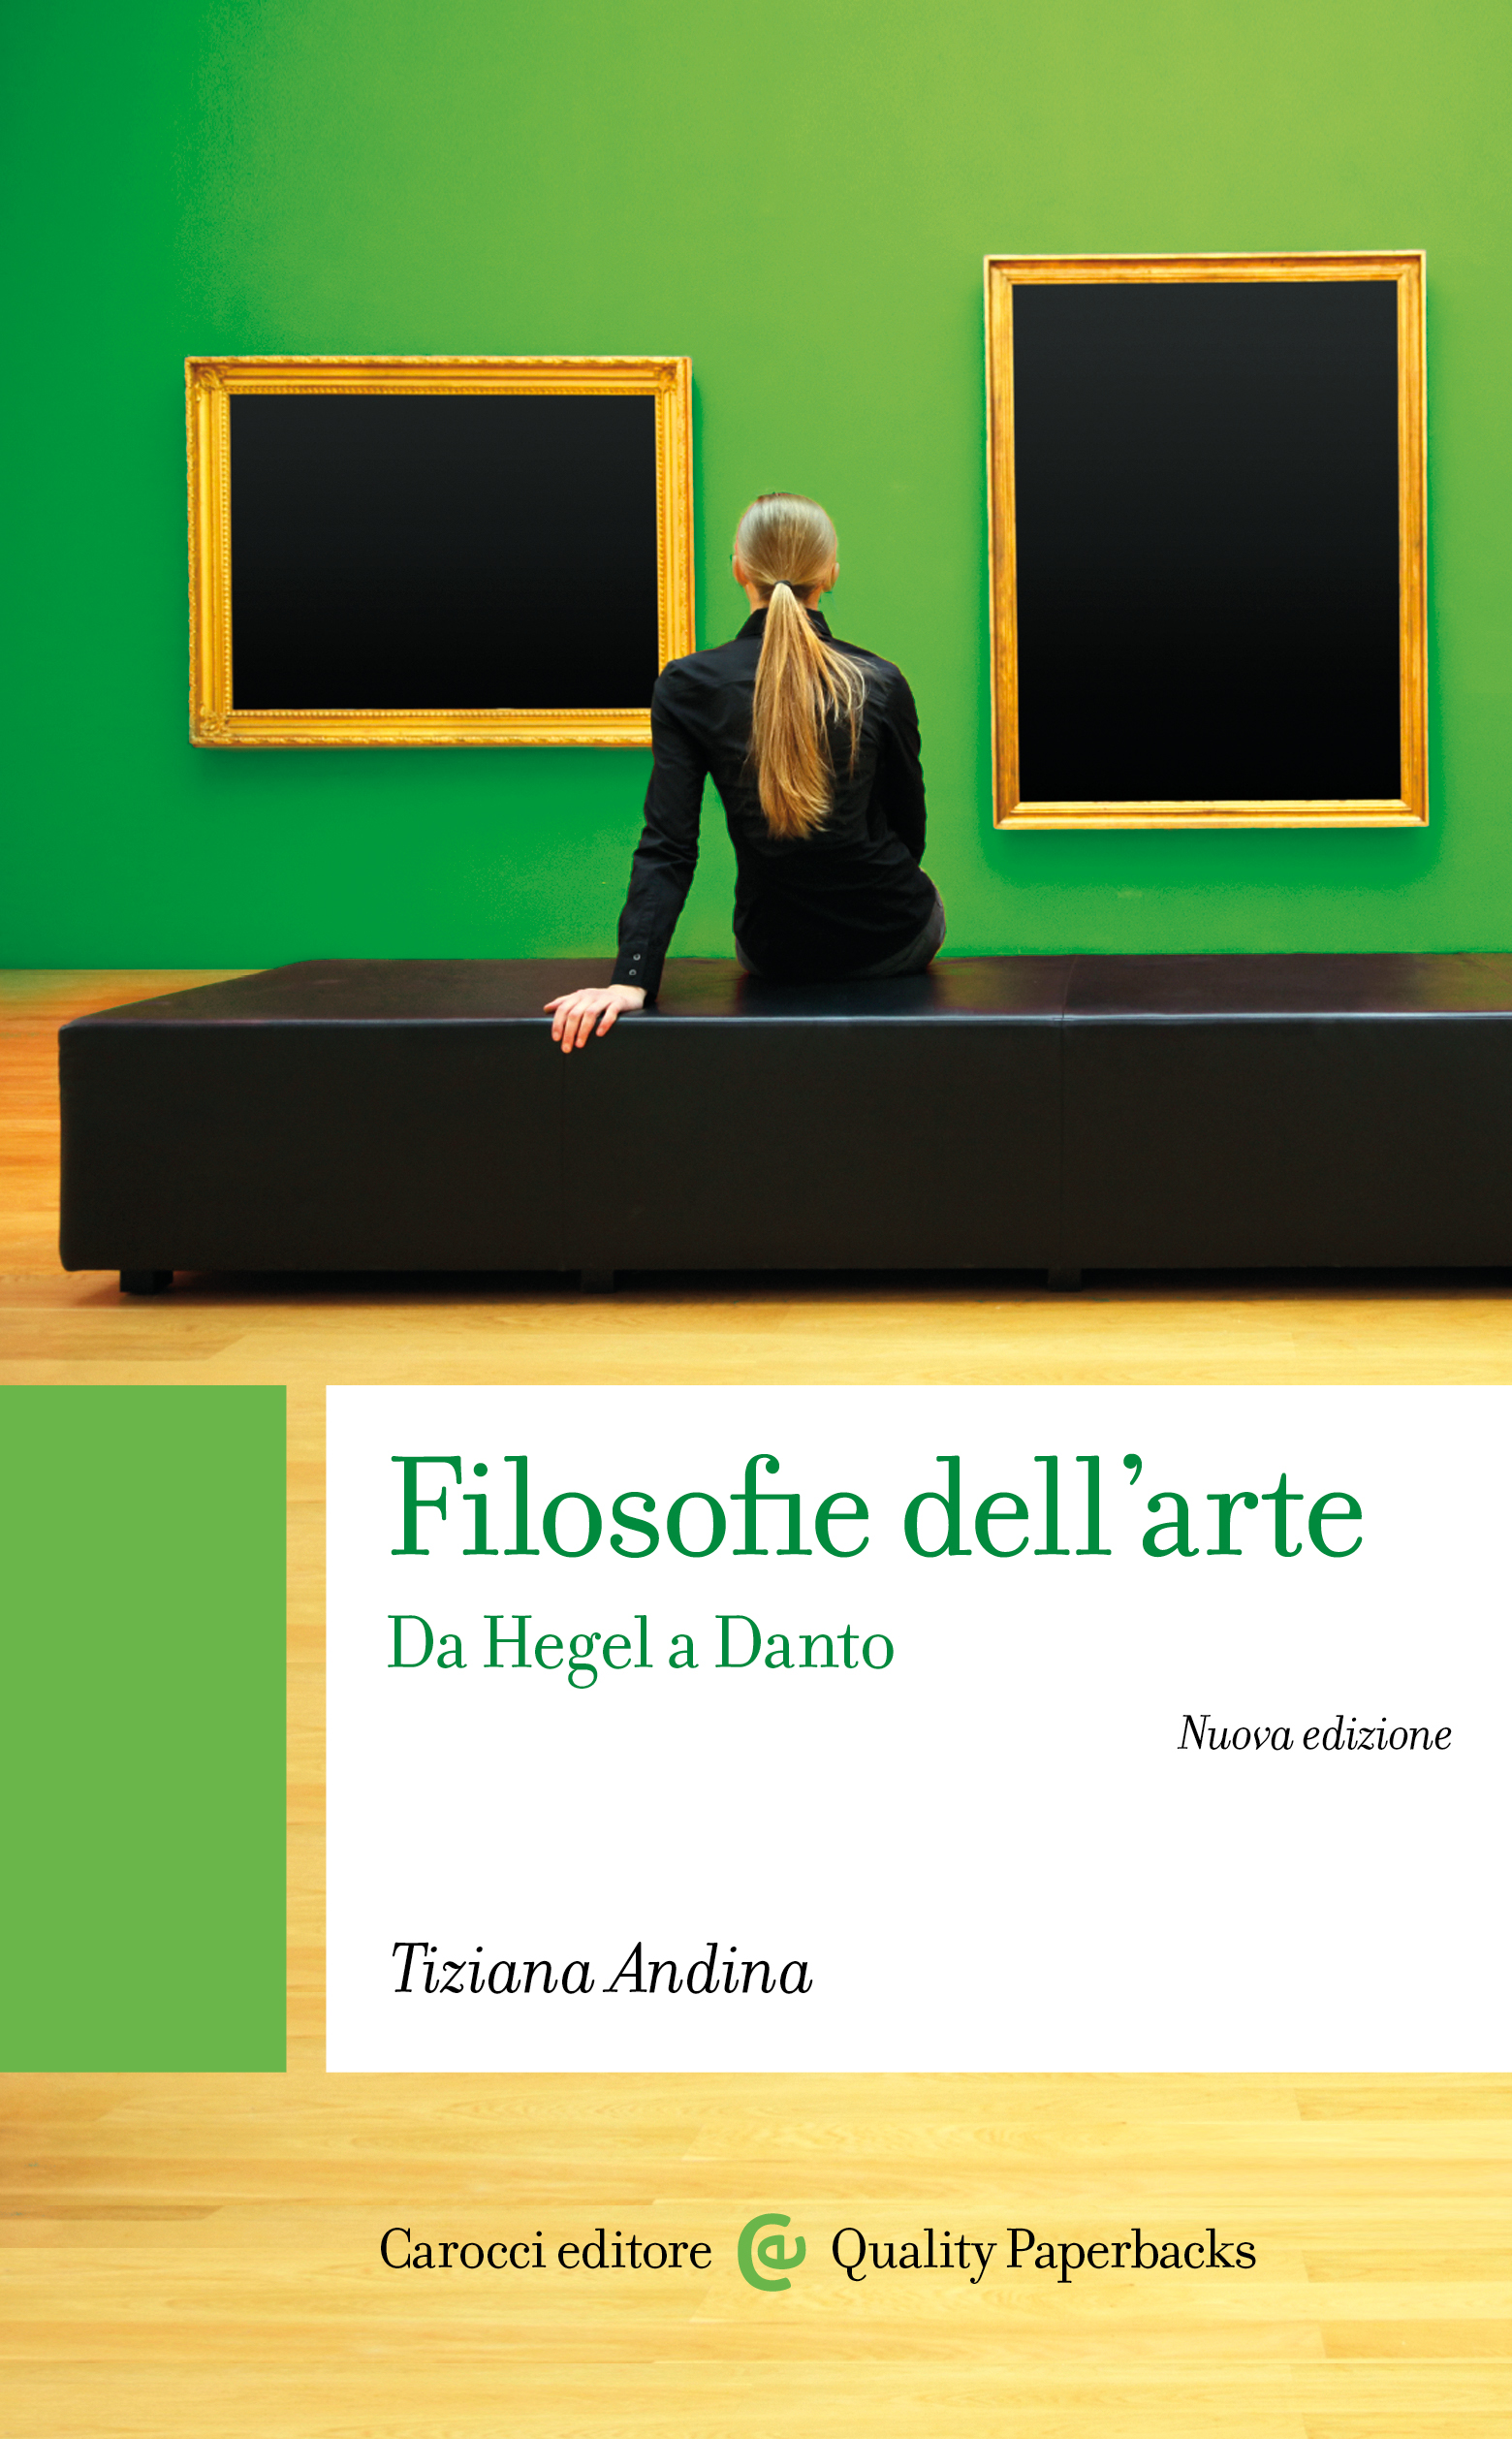 Filosofie dell'arte cover